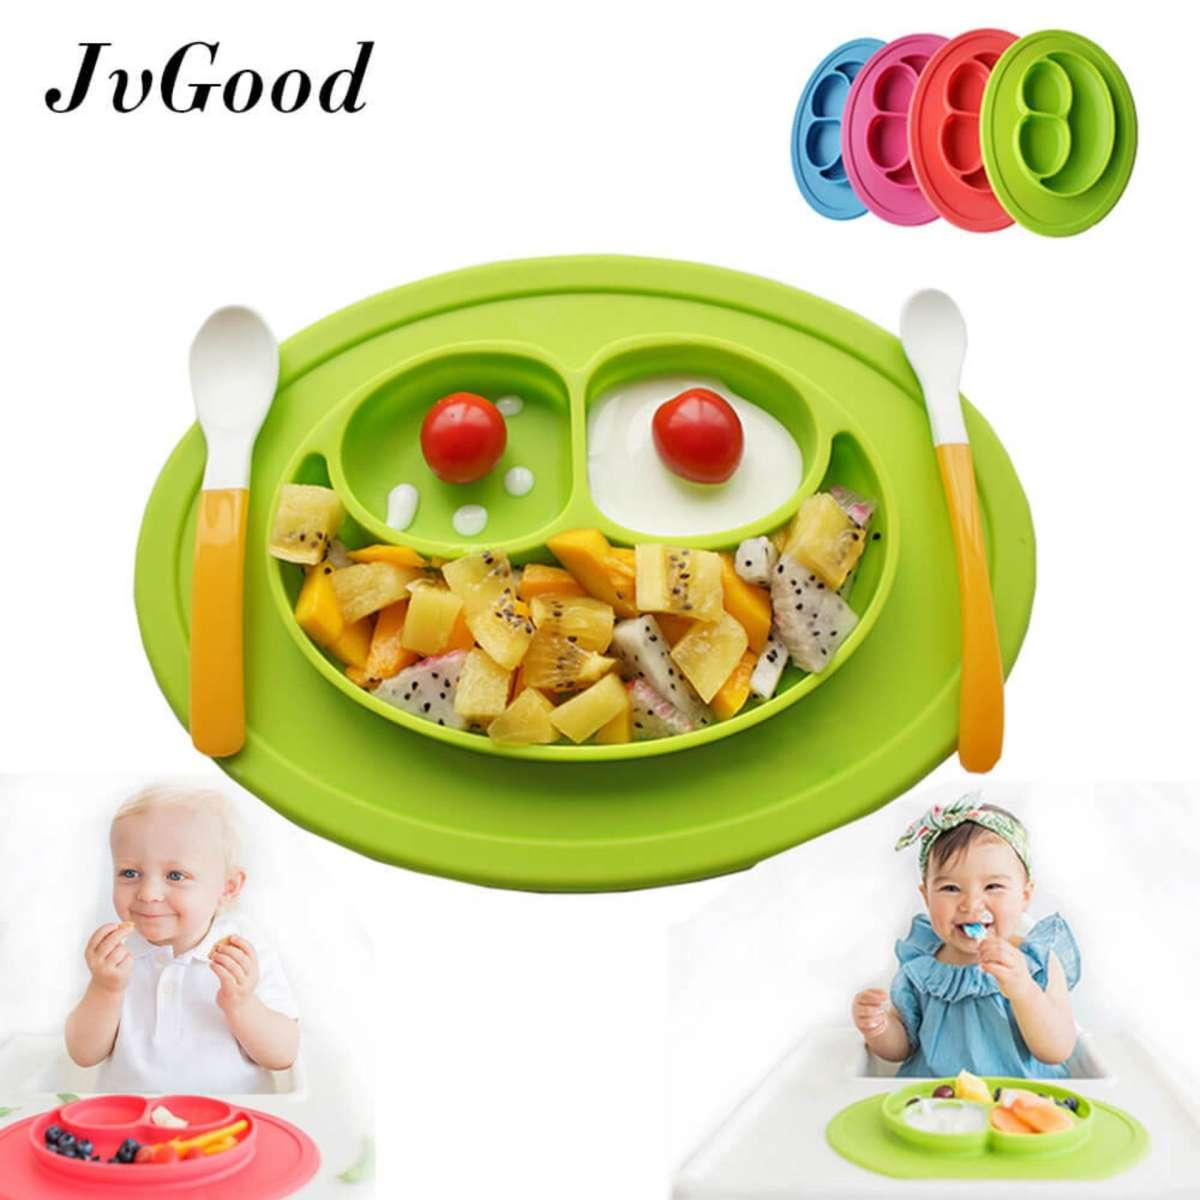 [promotion!] Jvgood Baby Silicone Placemat Plate Tray For Infants Toddlers And Kids Food Mats One Piece Happy Mat Suction Fits To Most Tables Highchair Non Slip Baby Feeding Fda Approved, Blue - Intl By Jvgood.